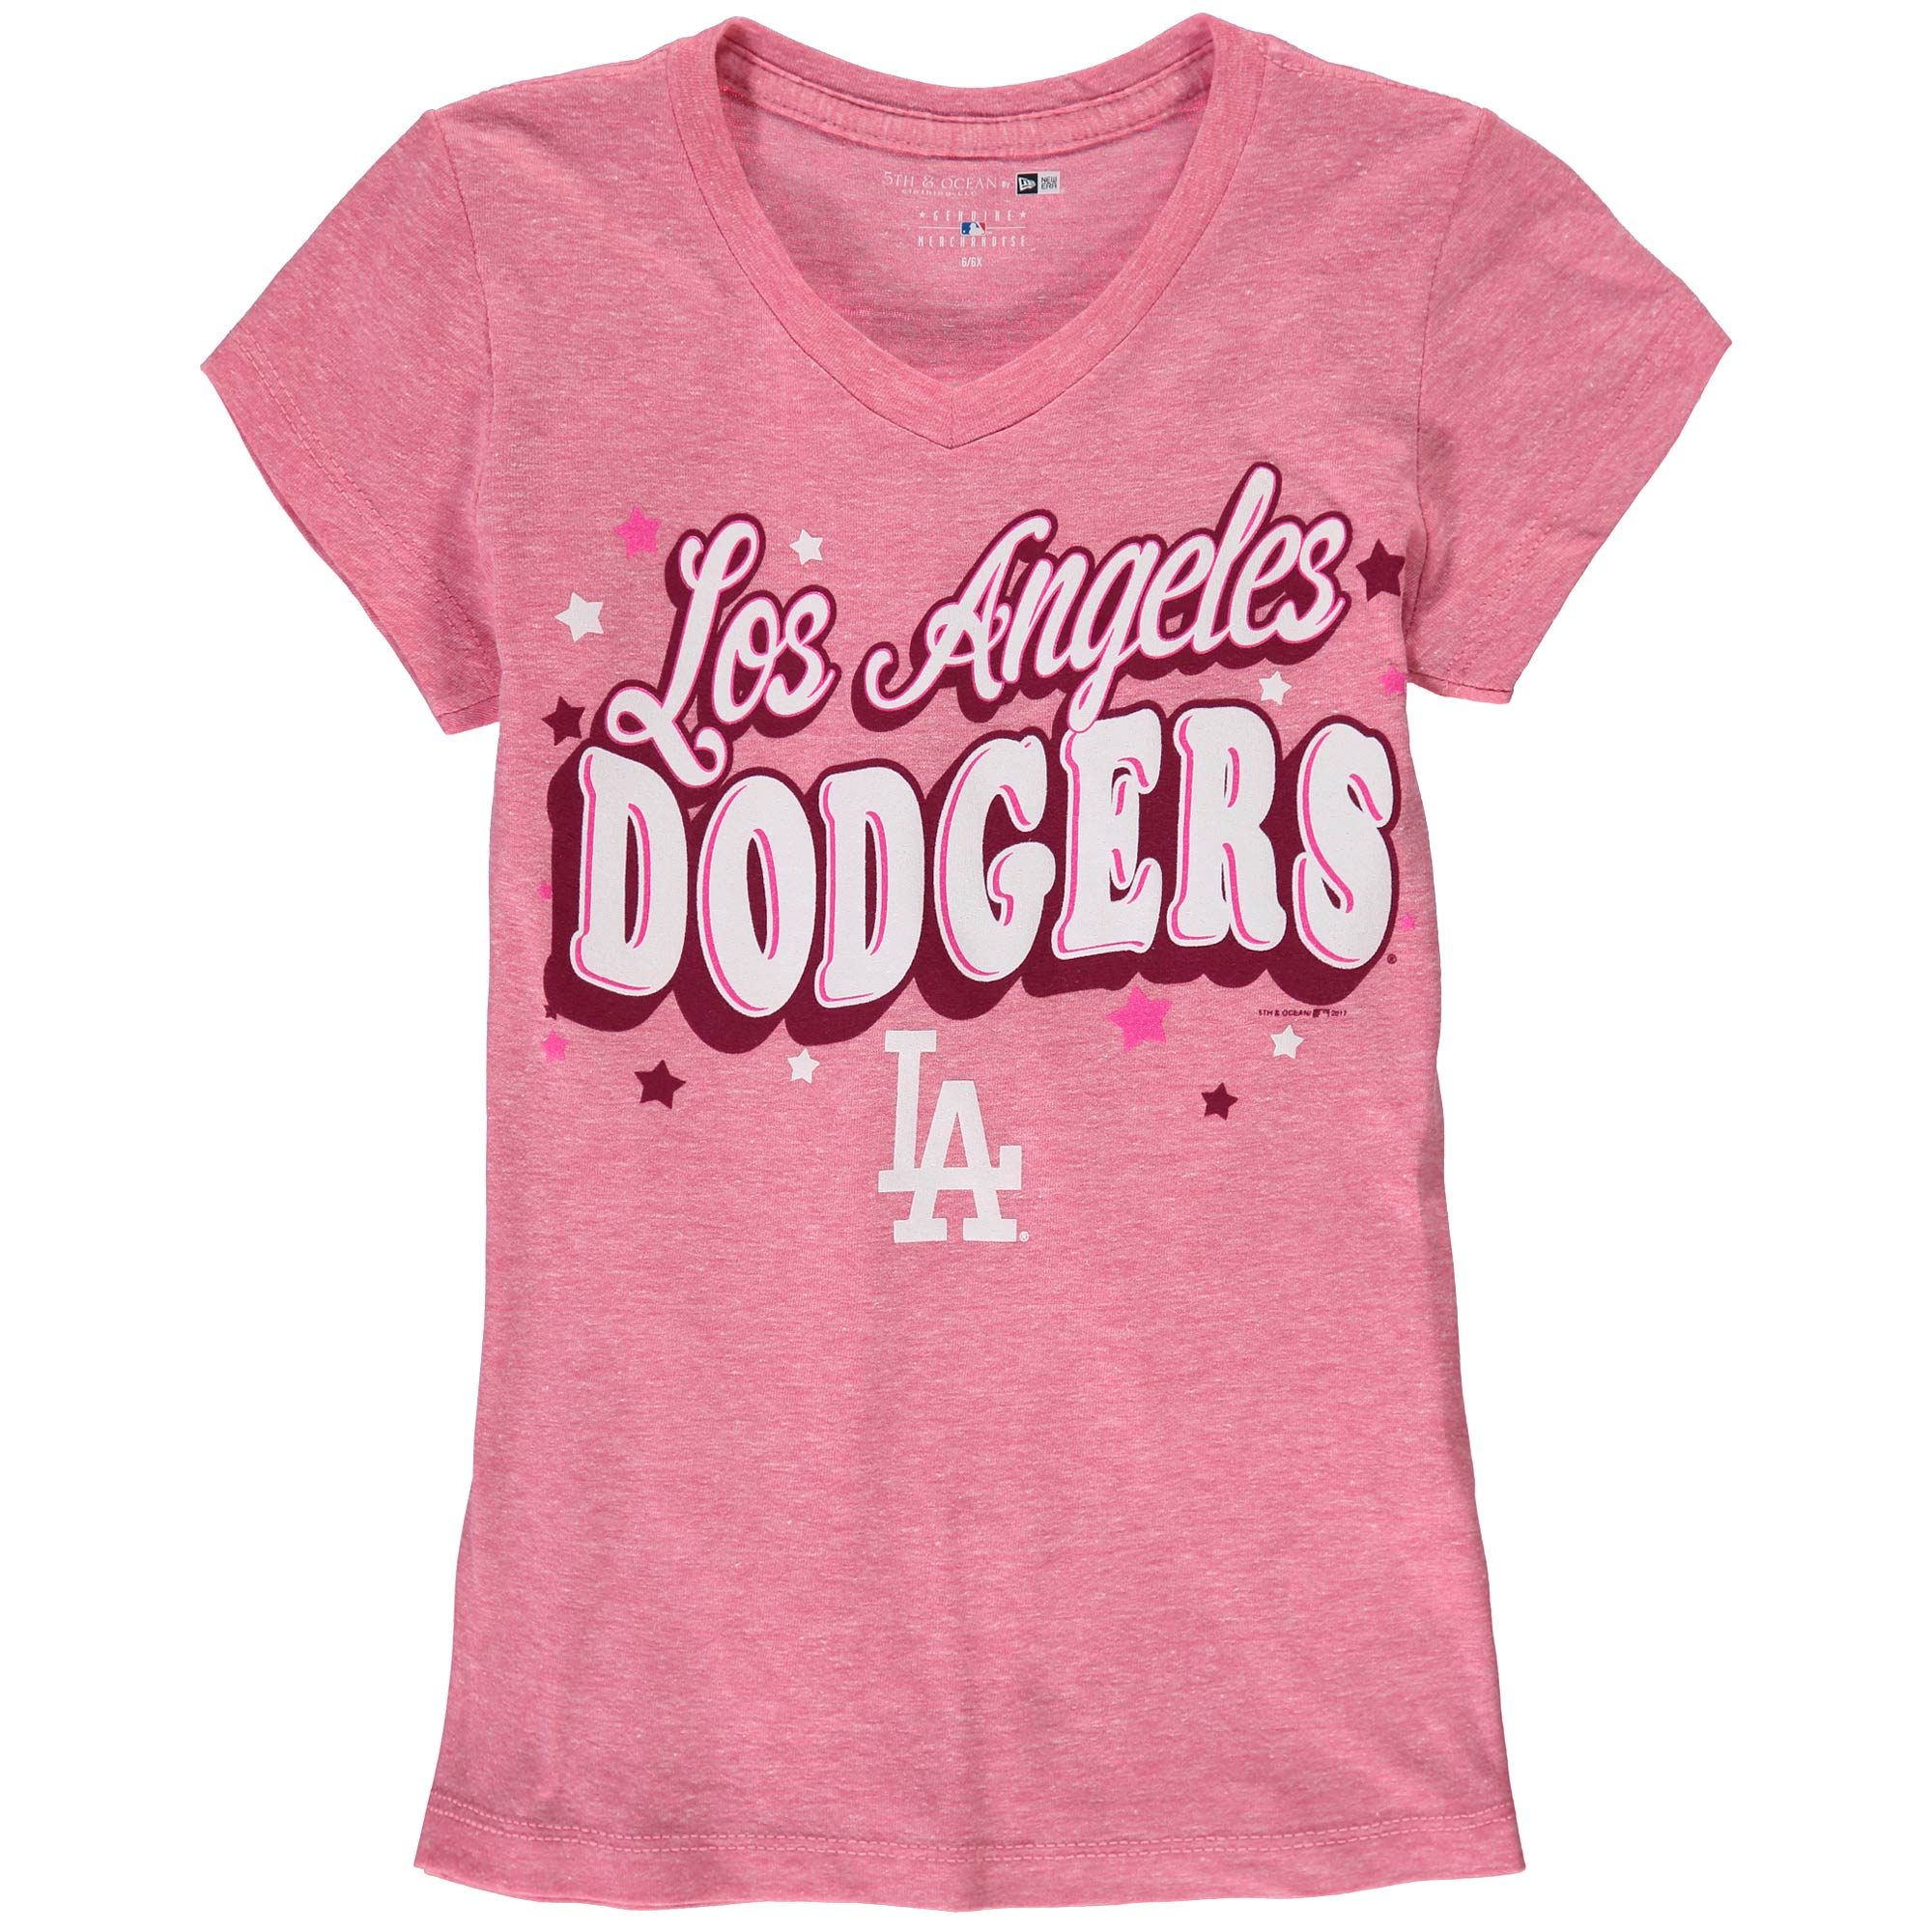 Los Angeles Dodgers 5th & Ocean by New Era Girls Youth Stars Tri-Blend V-Neck T-Shirt - Pink